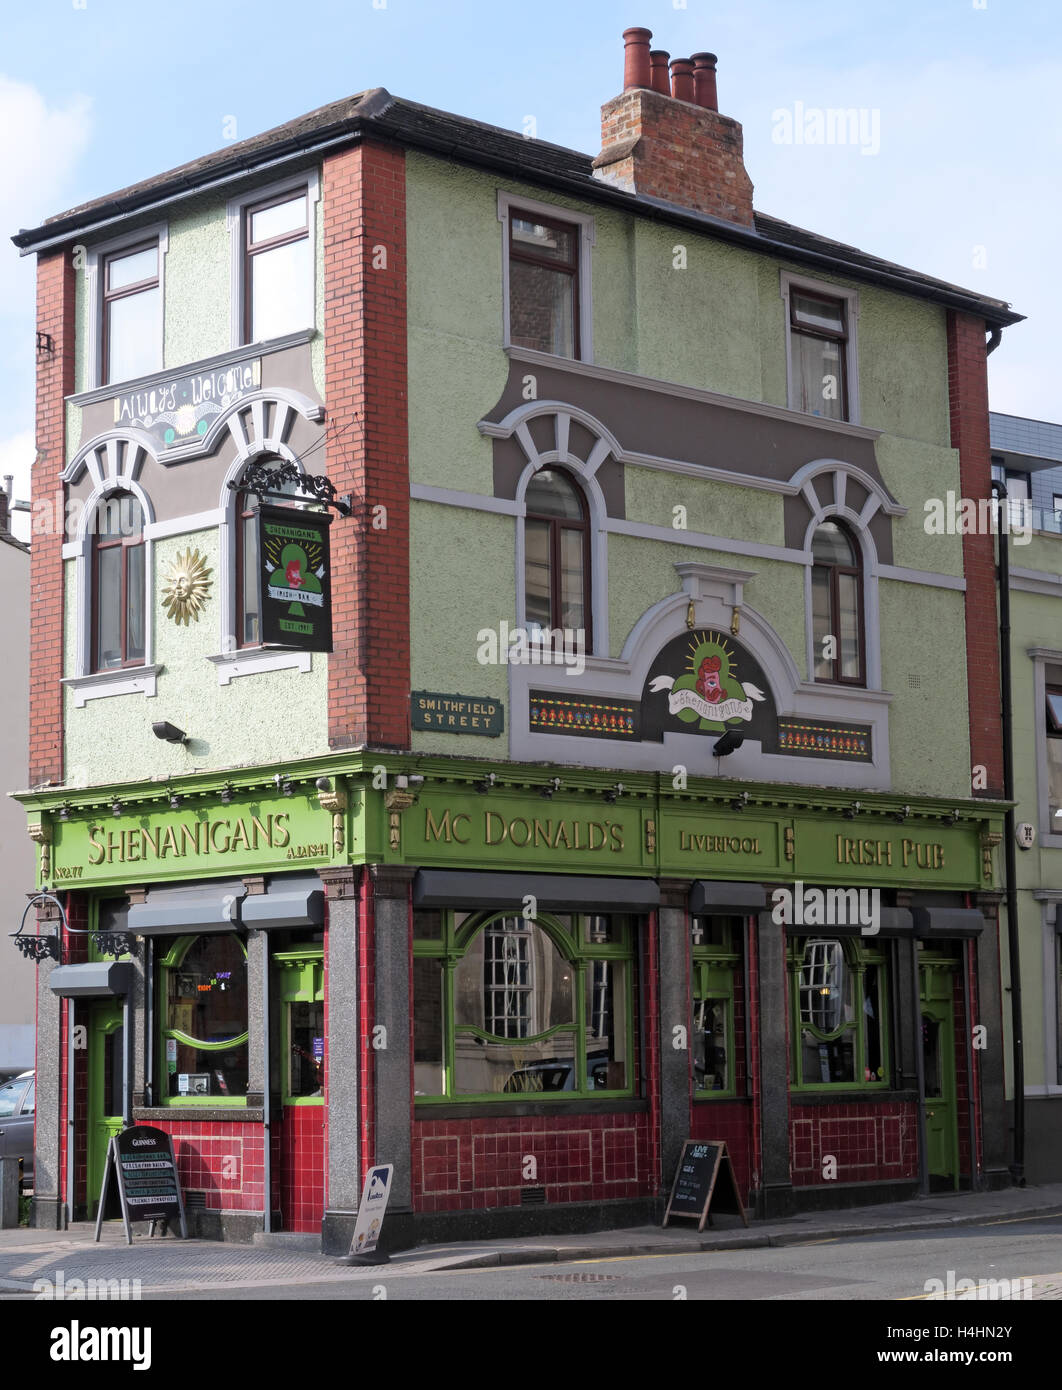 Shenanigans Pub,McDonalds Alehouse,Smithfield St,Liverpool,Merseyside, UK Stock Photo